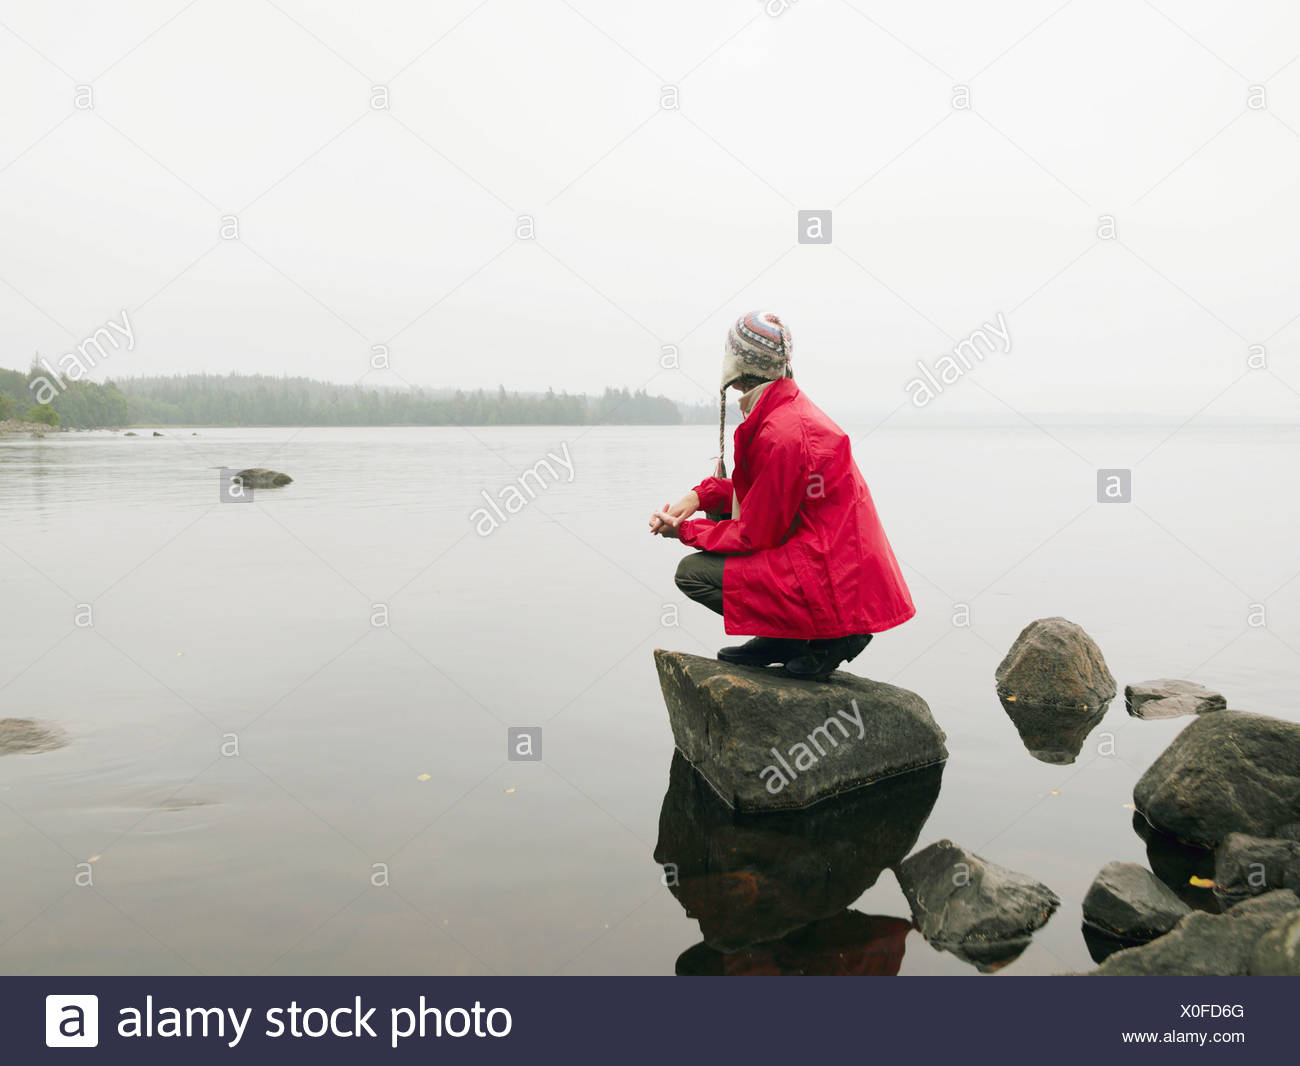 Woman crouching on large rock in the water. - Stock Image